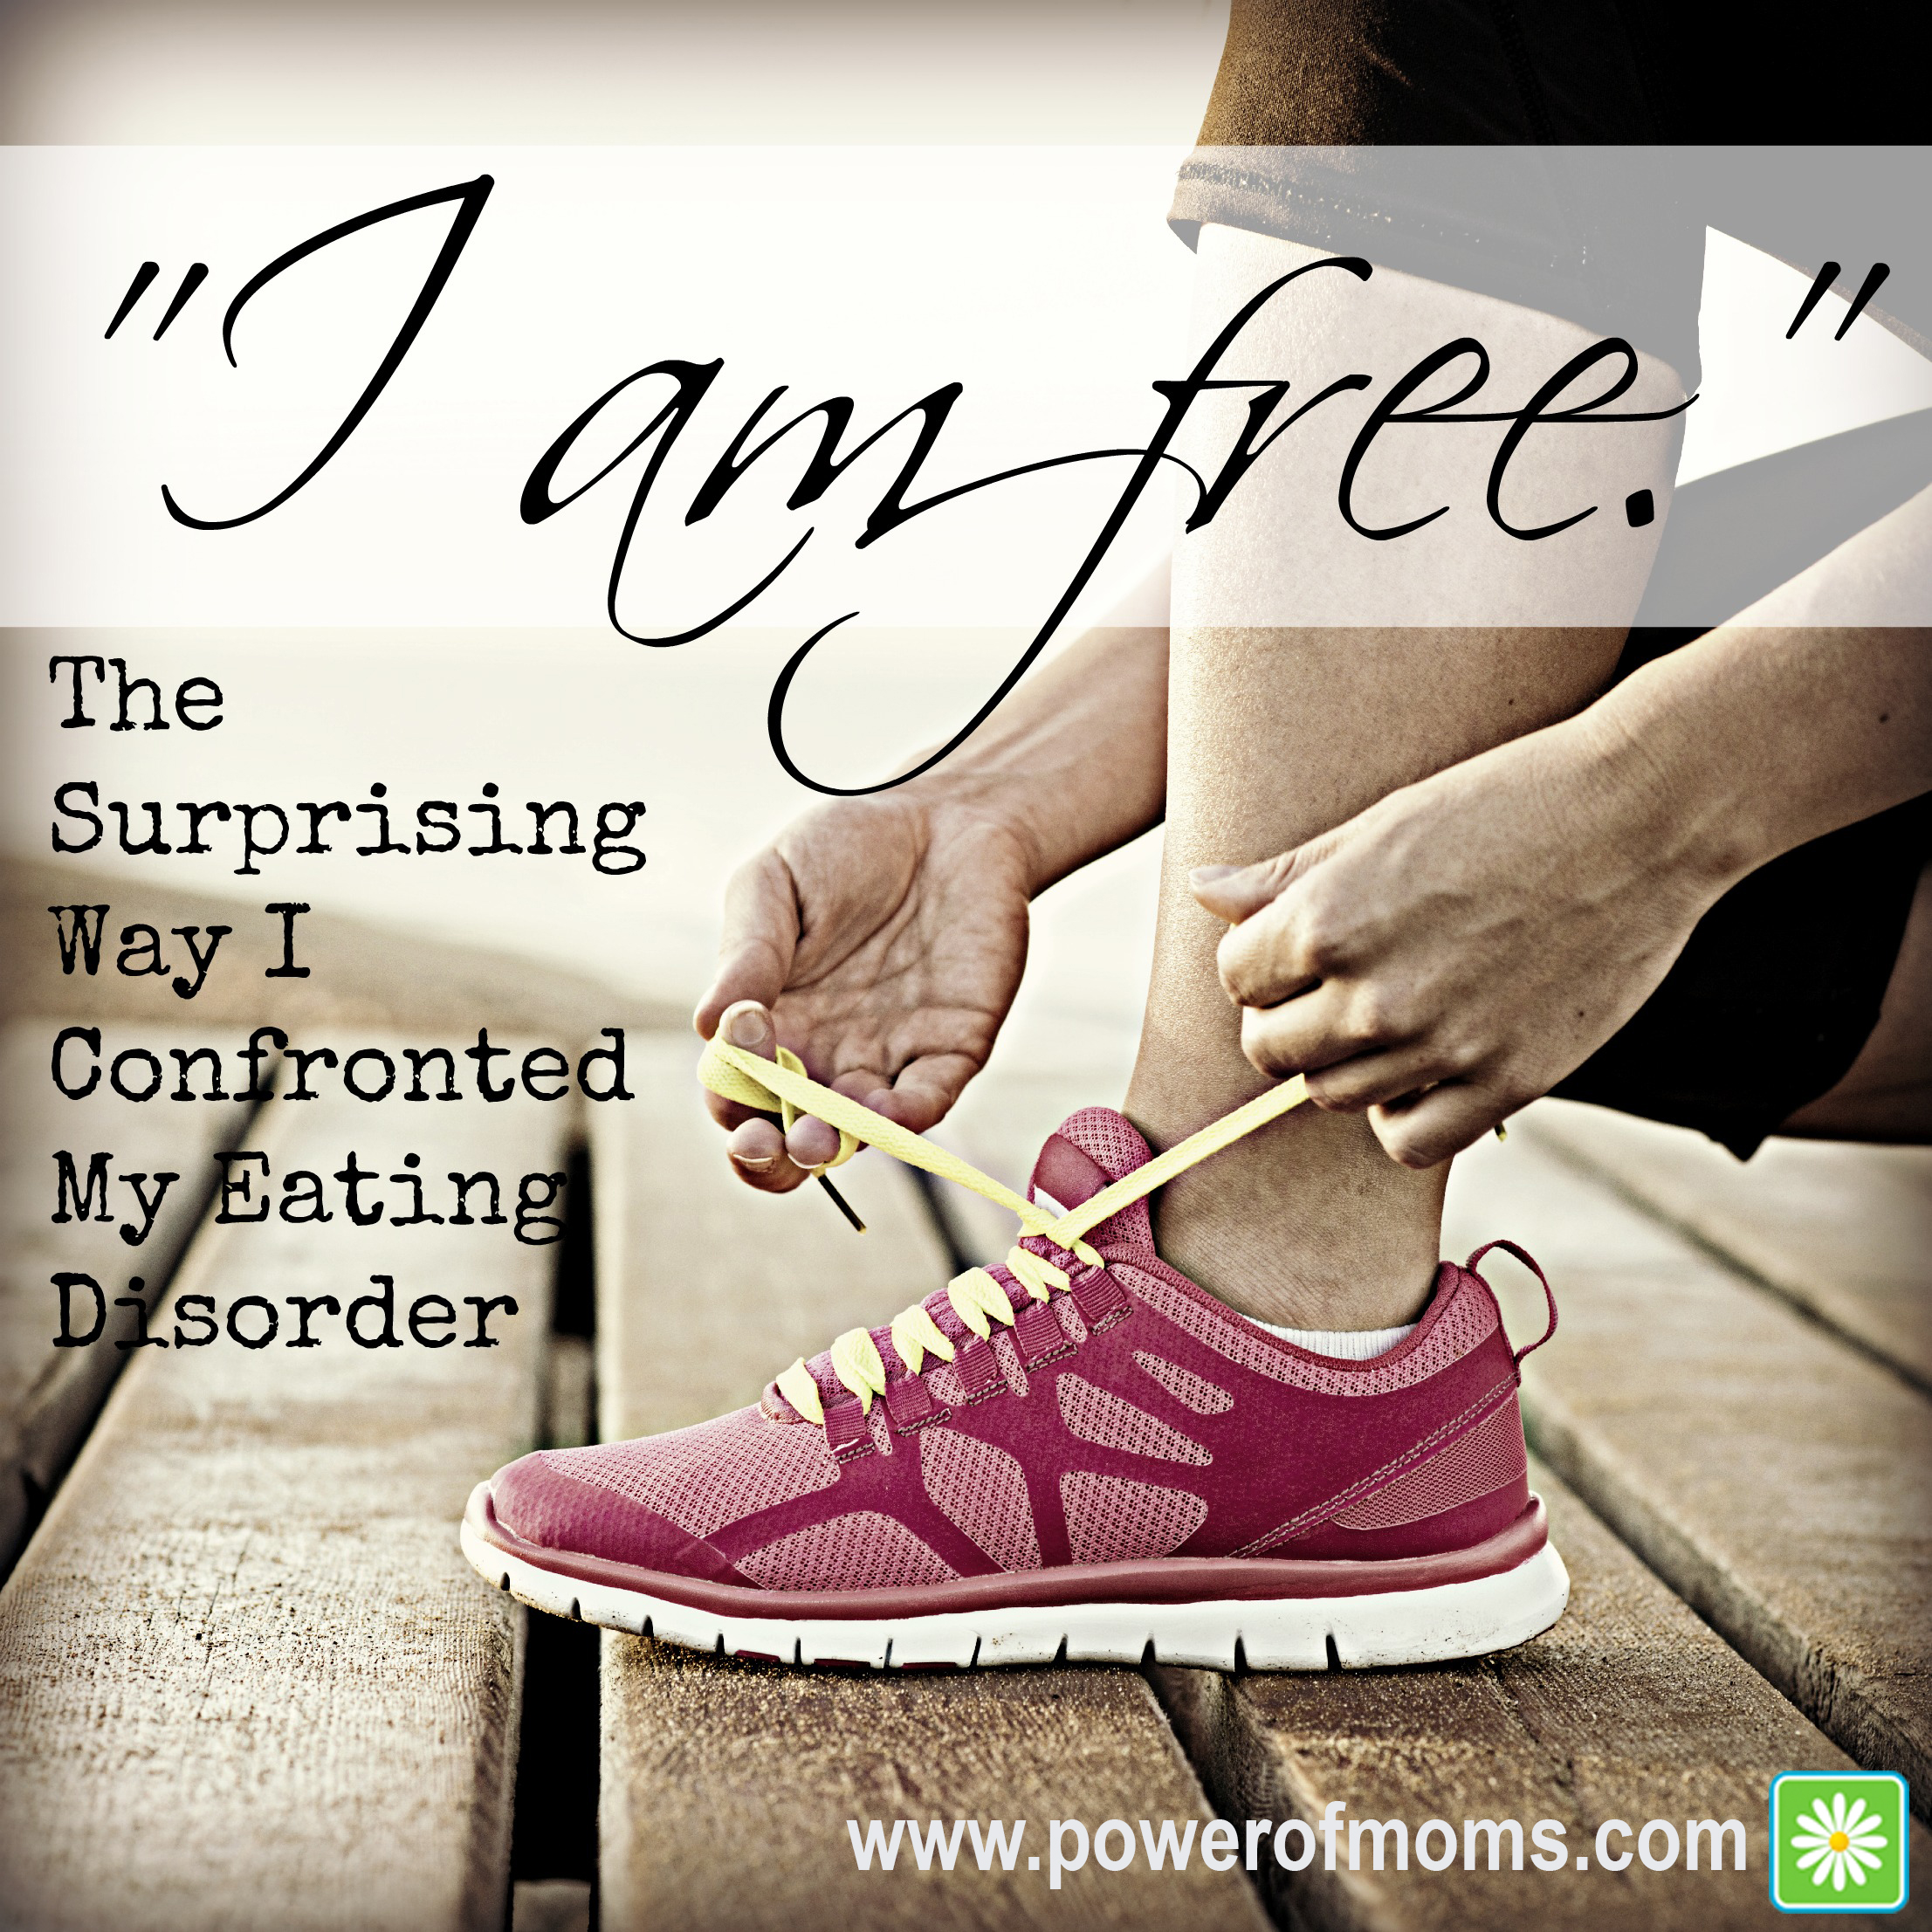 A hopeful message for those struggling with eating disorders. www.powerofmoms.com